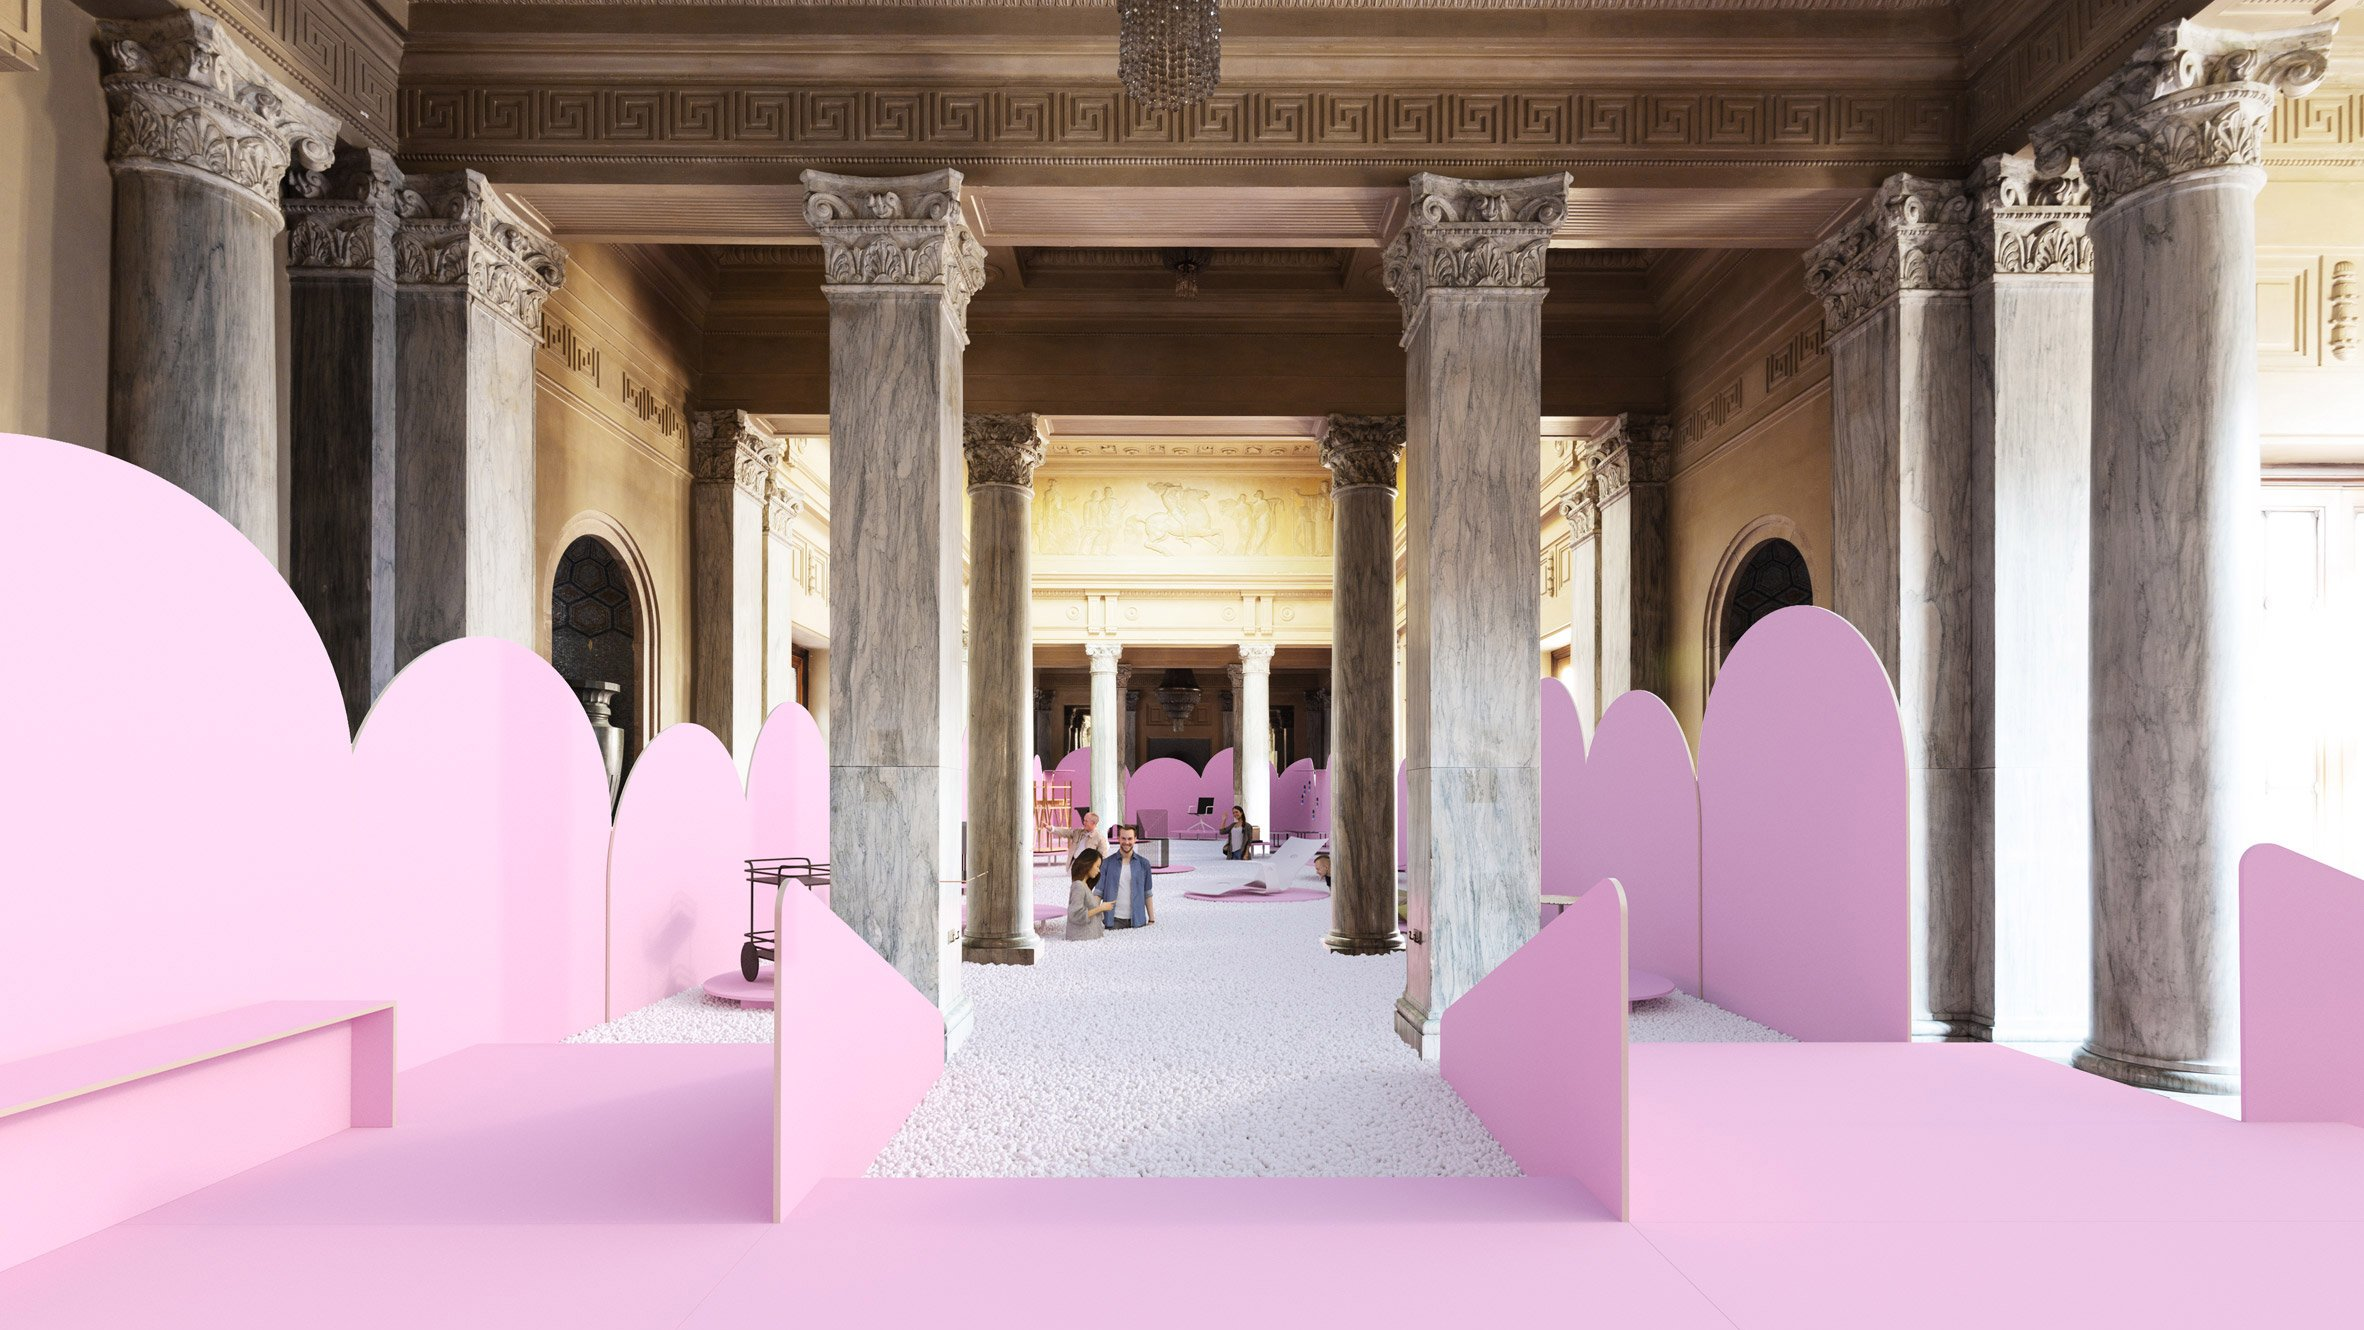 Studio La Sala Milano milan design week guide to the best exhibitions and